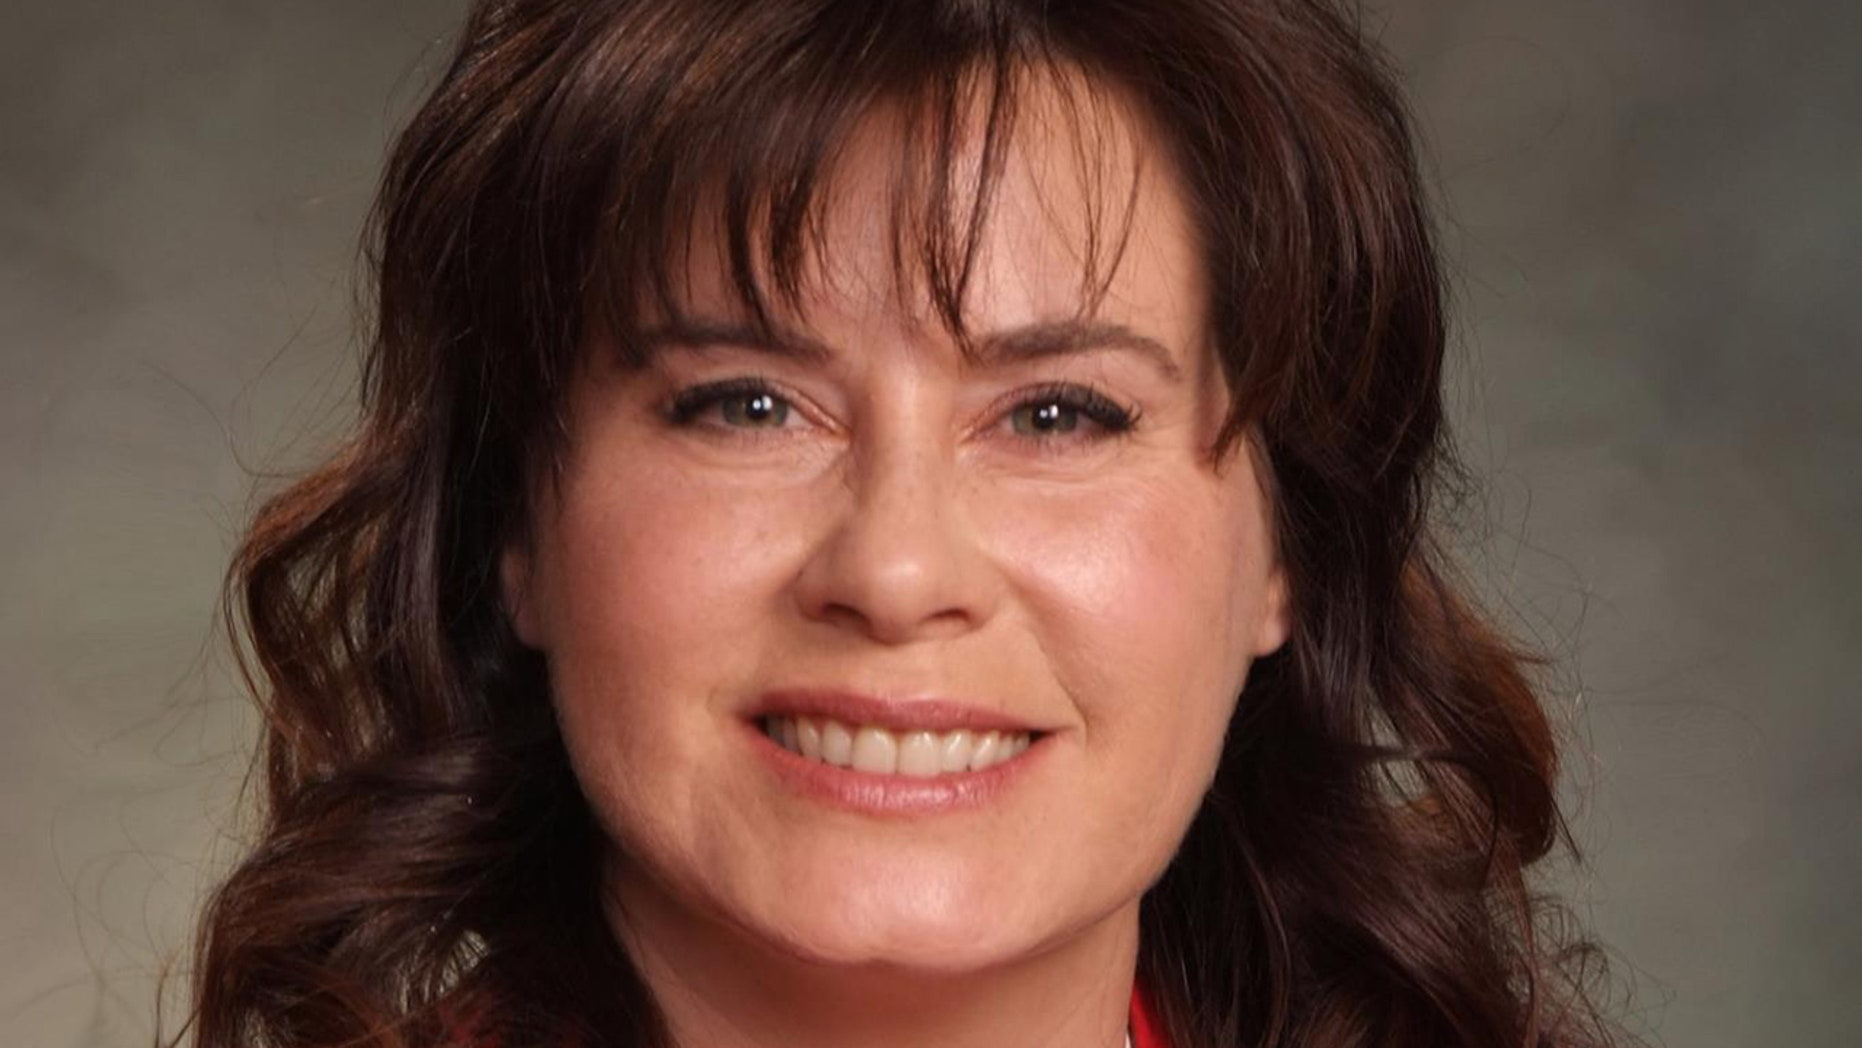 """Colorado state Rep. Lori Saine claimed """"whites and blacks alike"""" experienced lynching """"in nearly equal numbers"""" for being Republicans in a recent speech."""